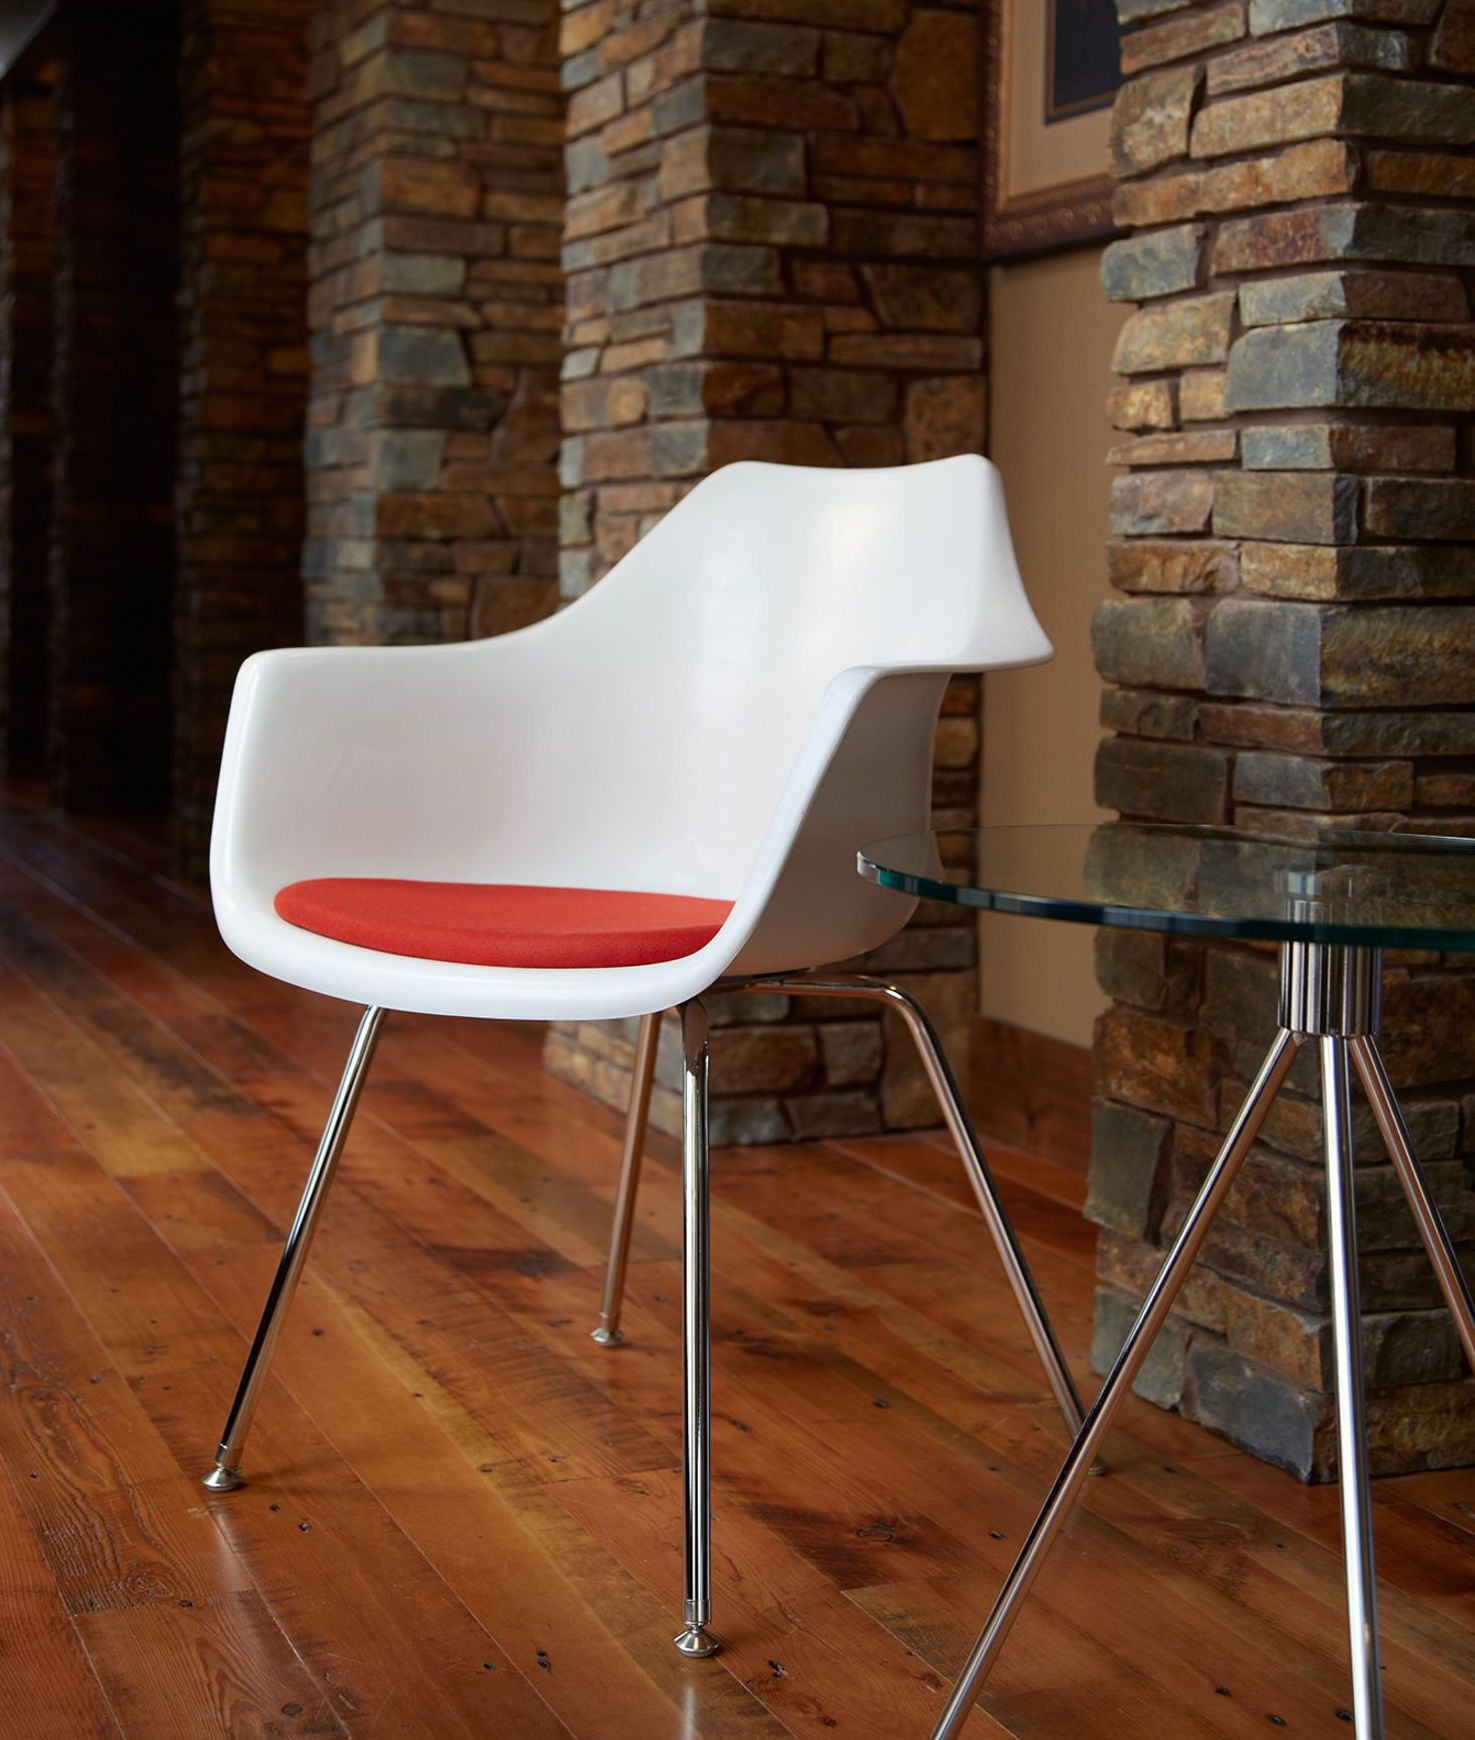 Swell Ki Jubi Modern Guest Chair Beatyapartments Chair Design Images Beatyapartmentscom